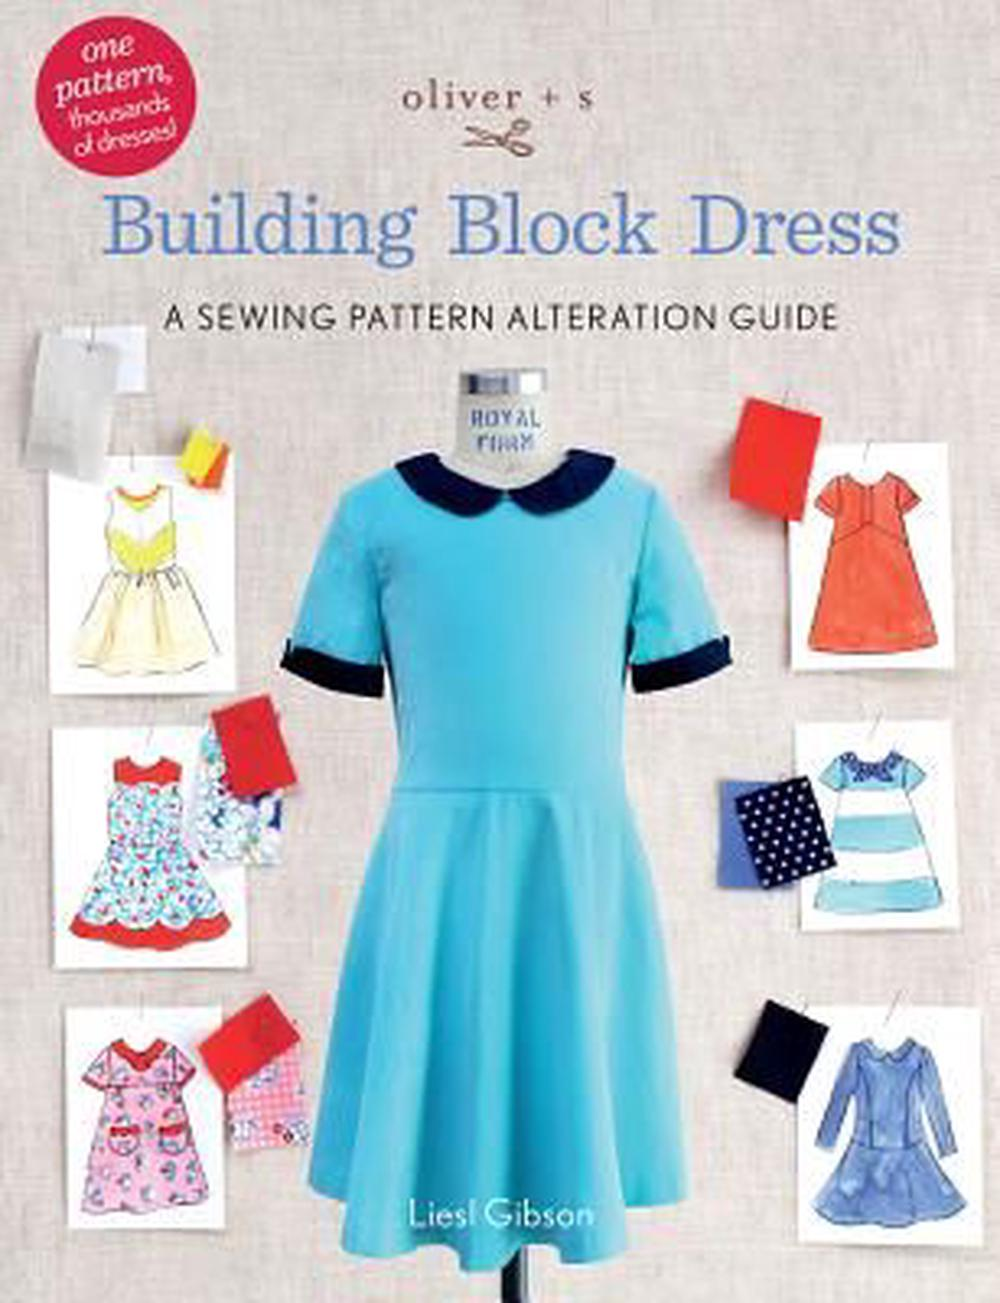 Oliver + S Building Block Dress: A Sewing Pattern Alteration Guide by Liesl Gibson, ISBN: 9780692687253